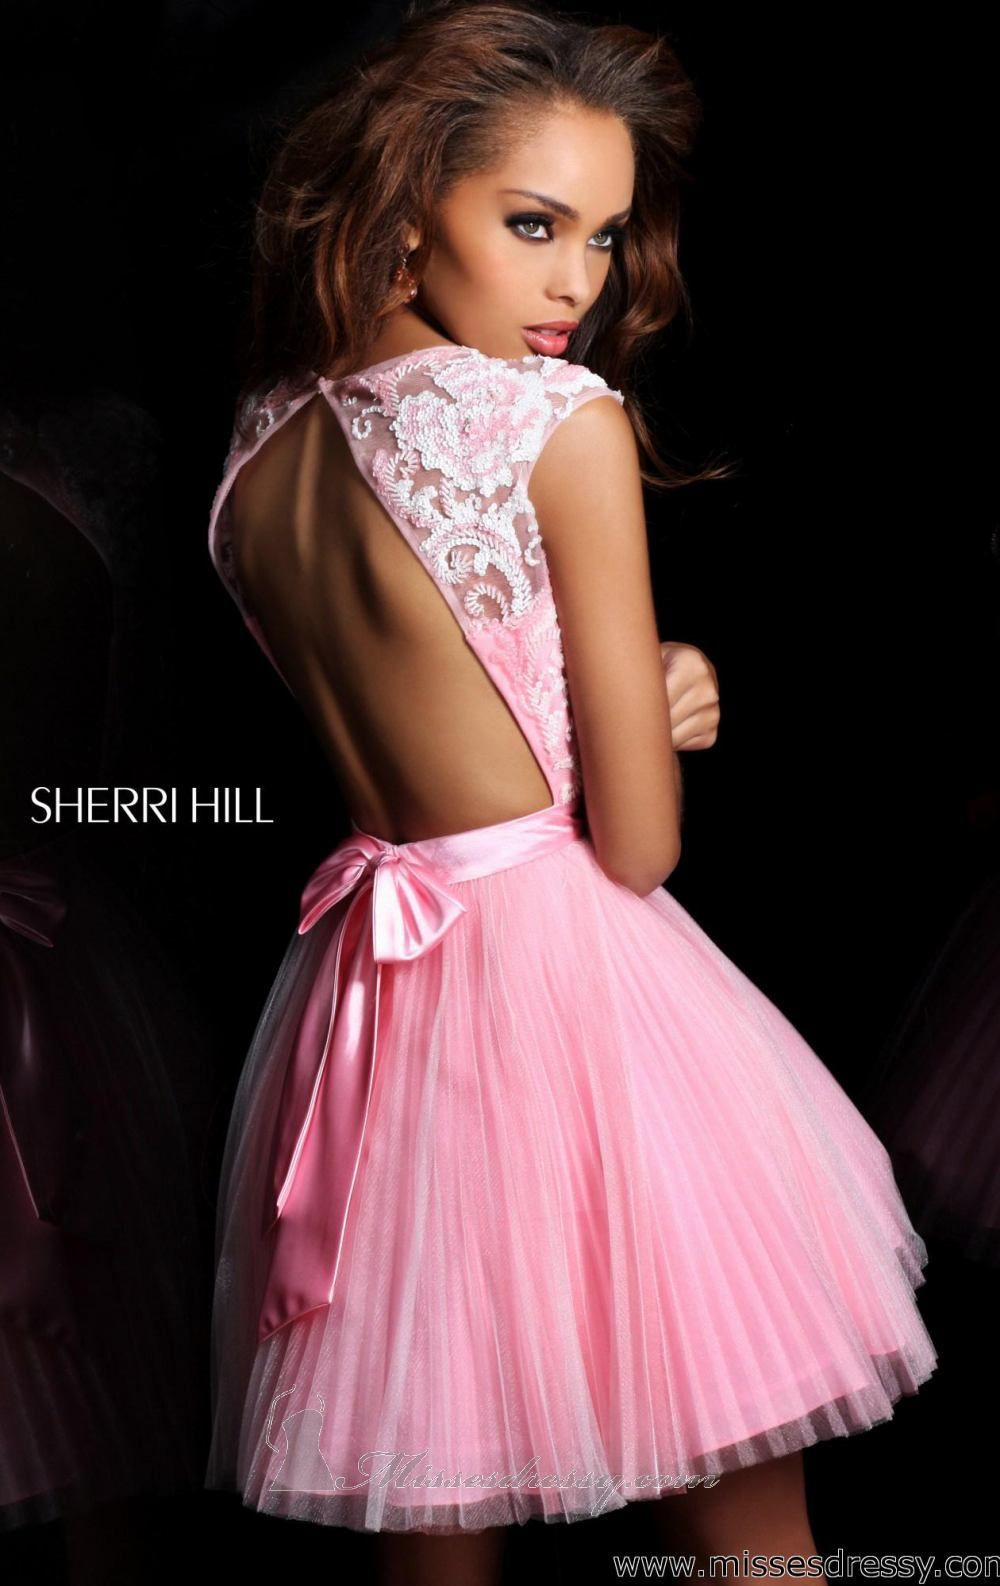 Lace & open back dress. Sherri Hill | Dresses | Pinterest | Rosas y ...